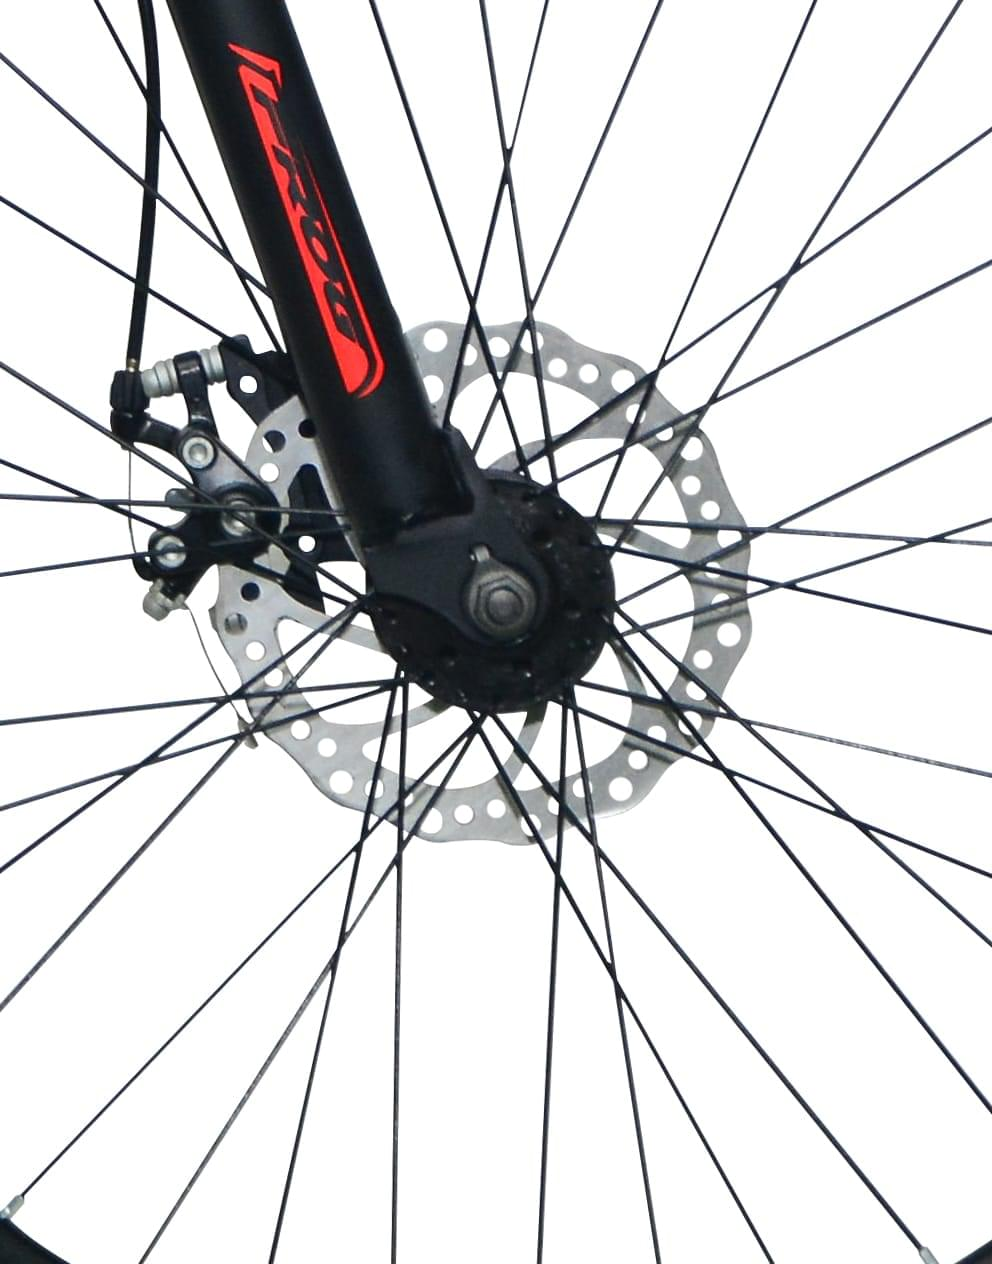 Superman 24 Red (V-Brakes) image 3